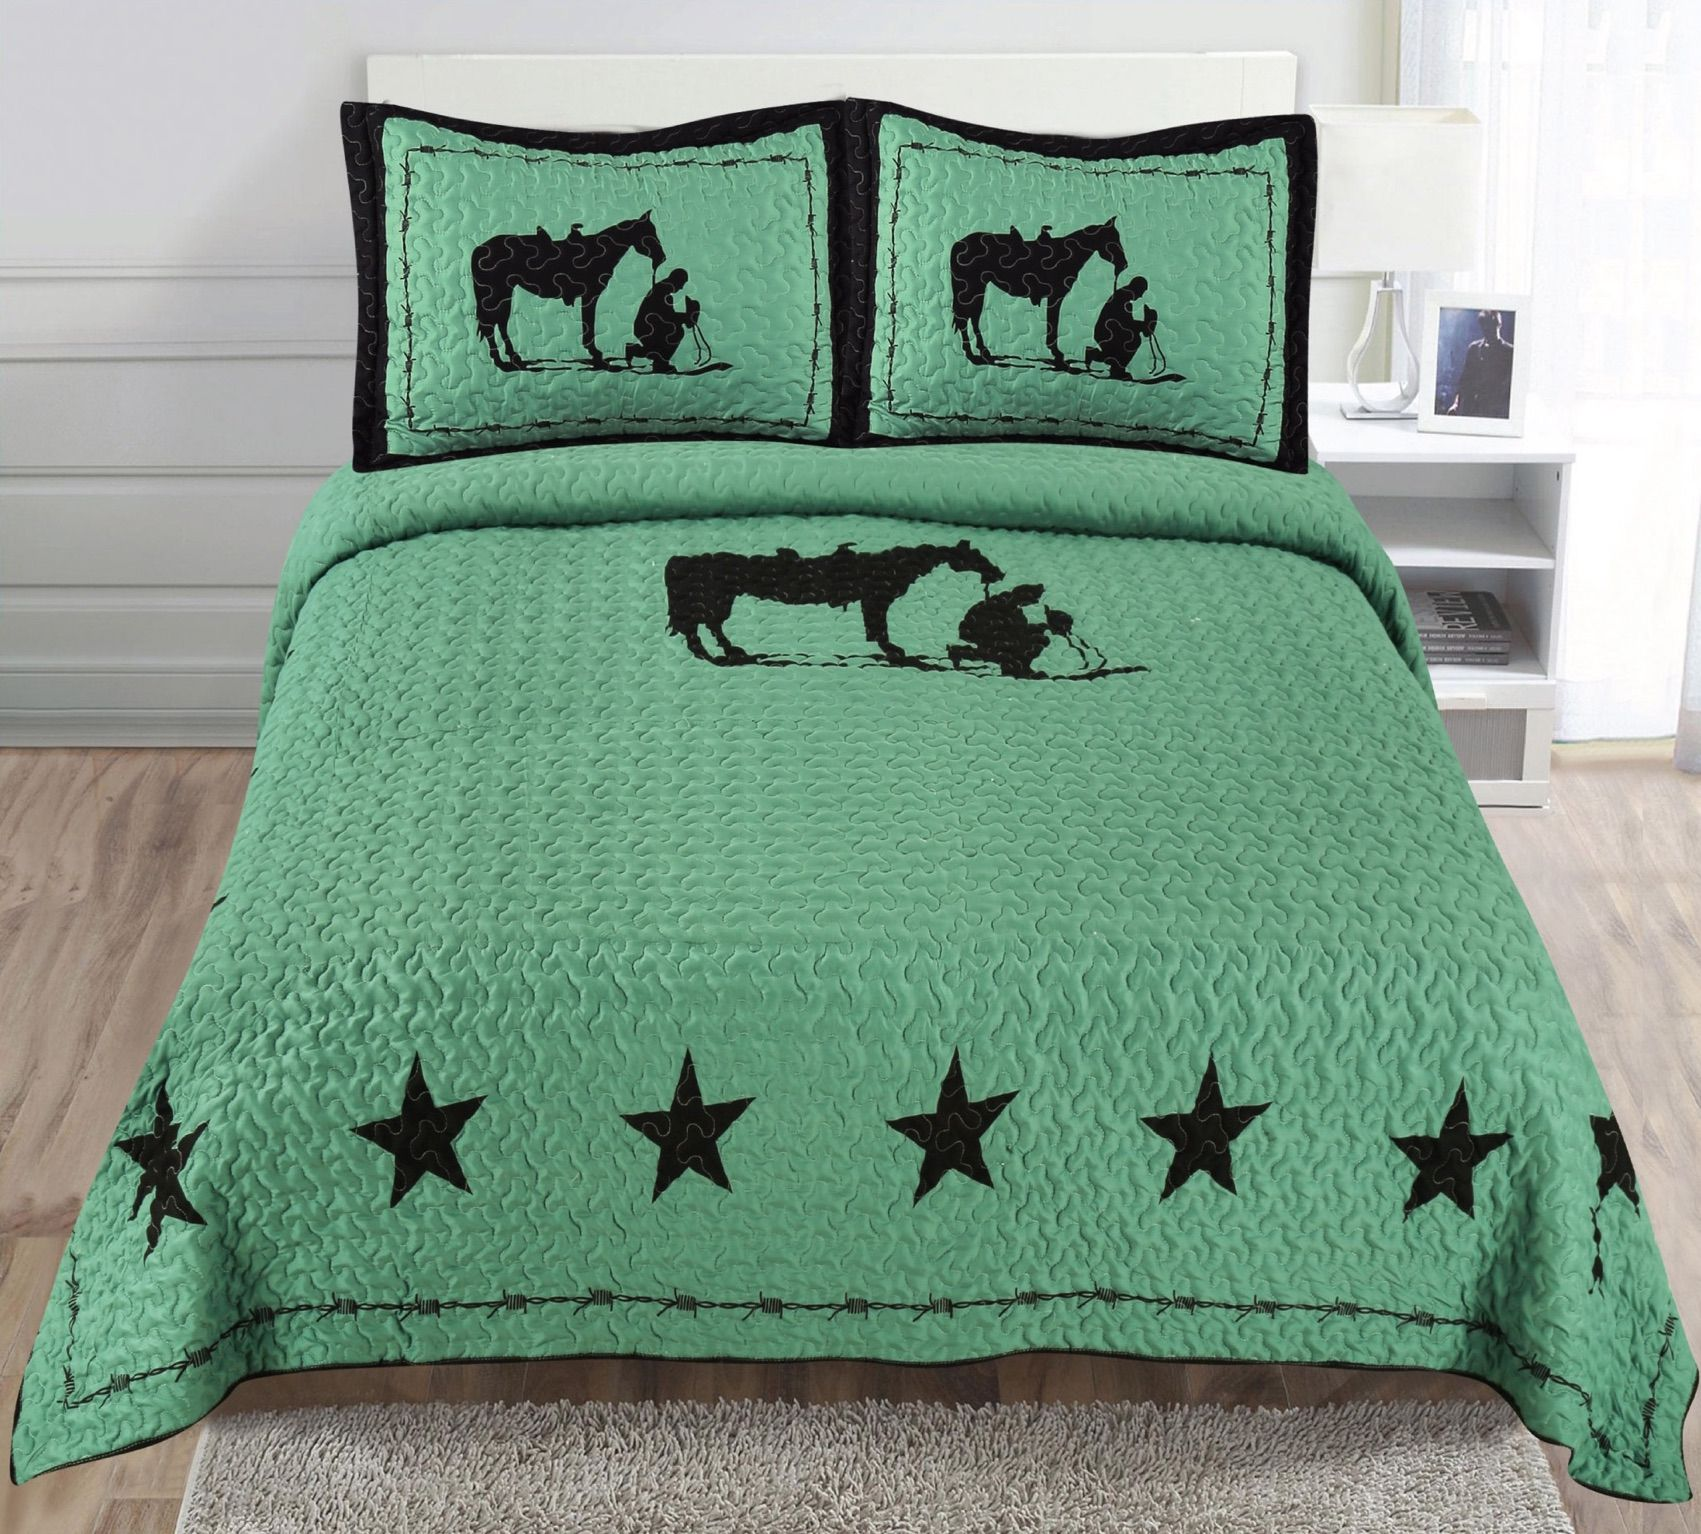 Our Lovely Praying Cowboy Quilts Are Half Off Horse Comforter Sets Bedding Set Queen Bedding Sets